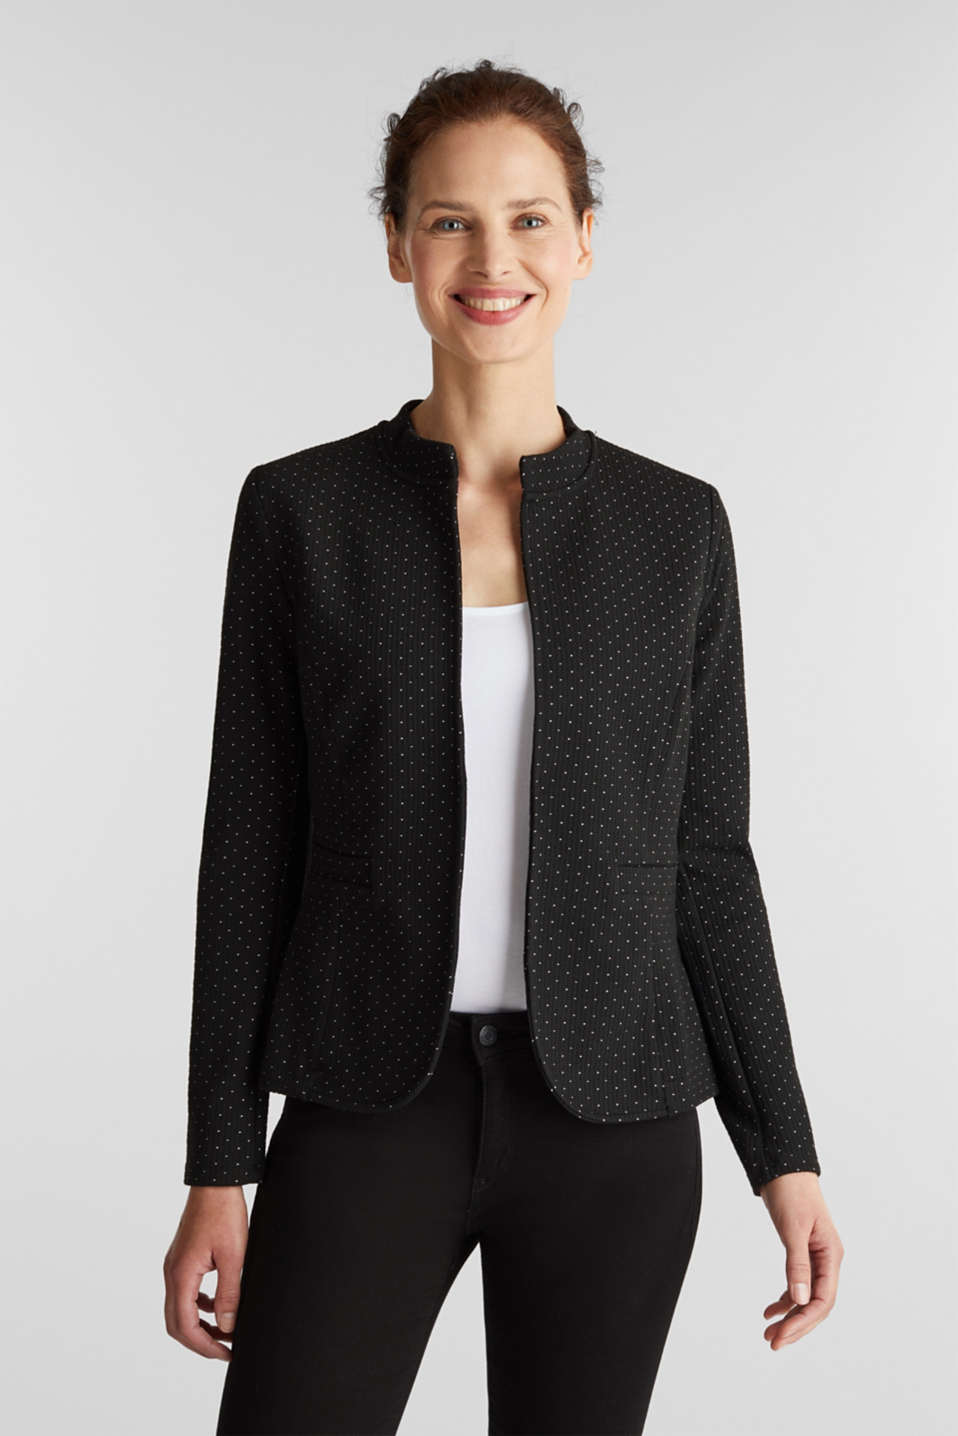 Esprit - Stretch jersey blazer with jacquard polka dots